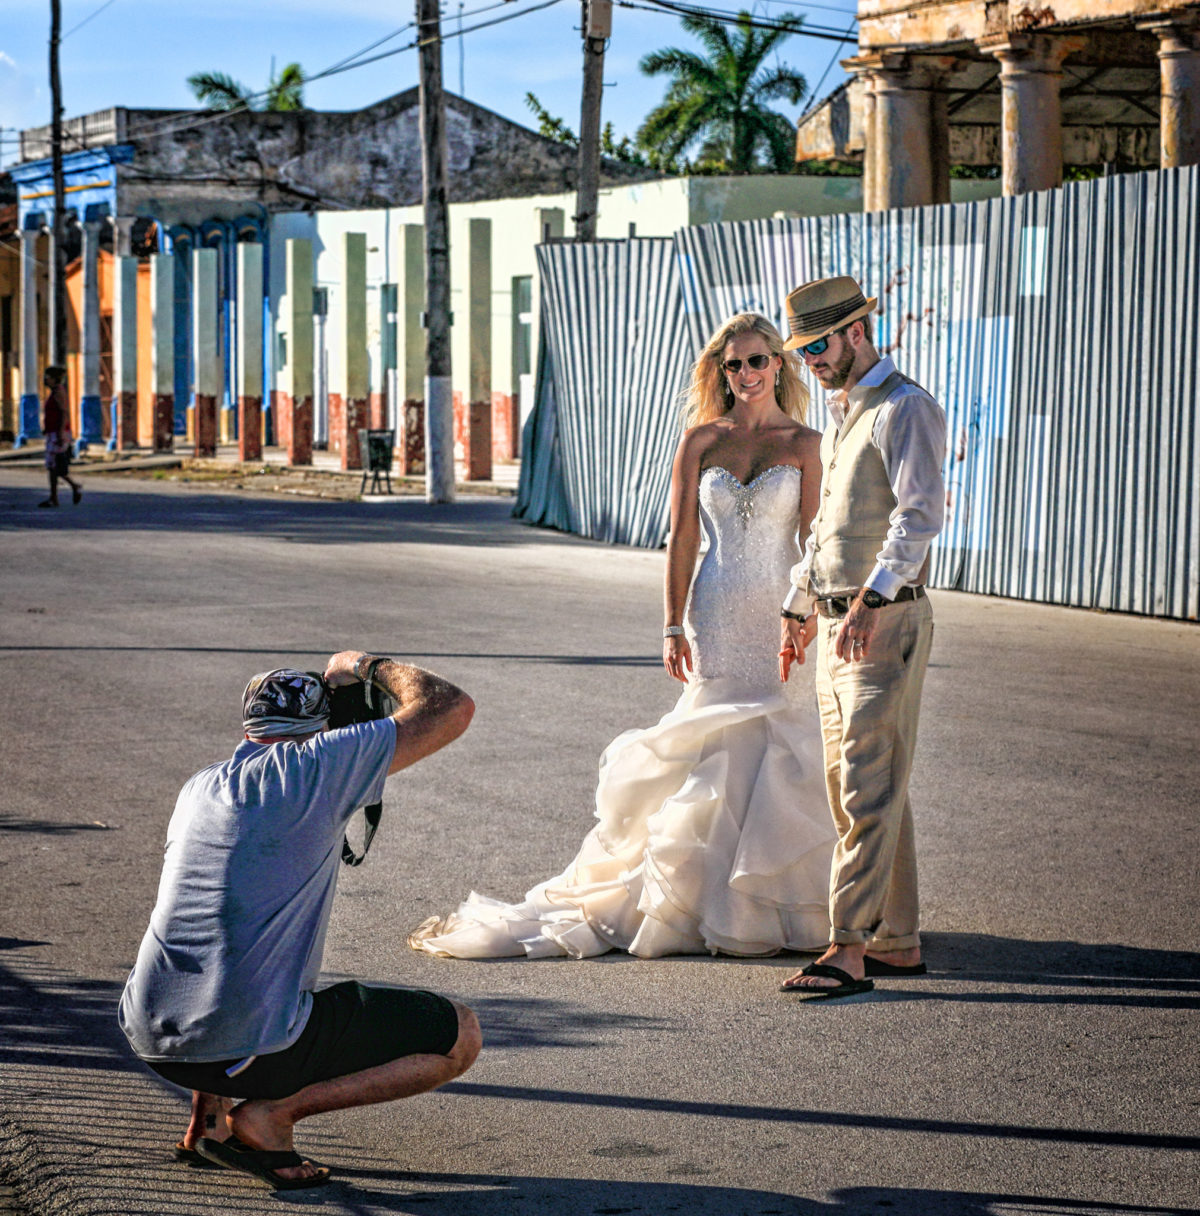 Banff wedding photographer, Troy Burnett on location in Cuba.